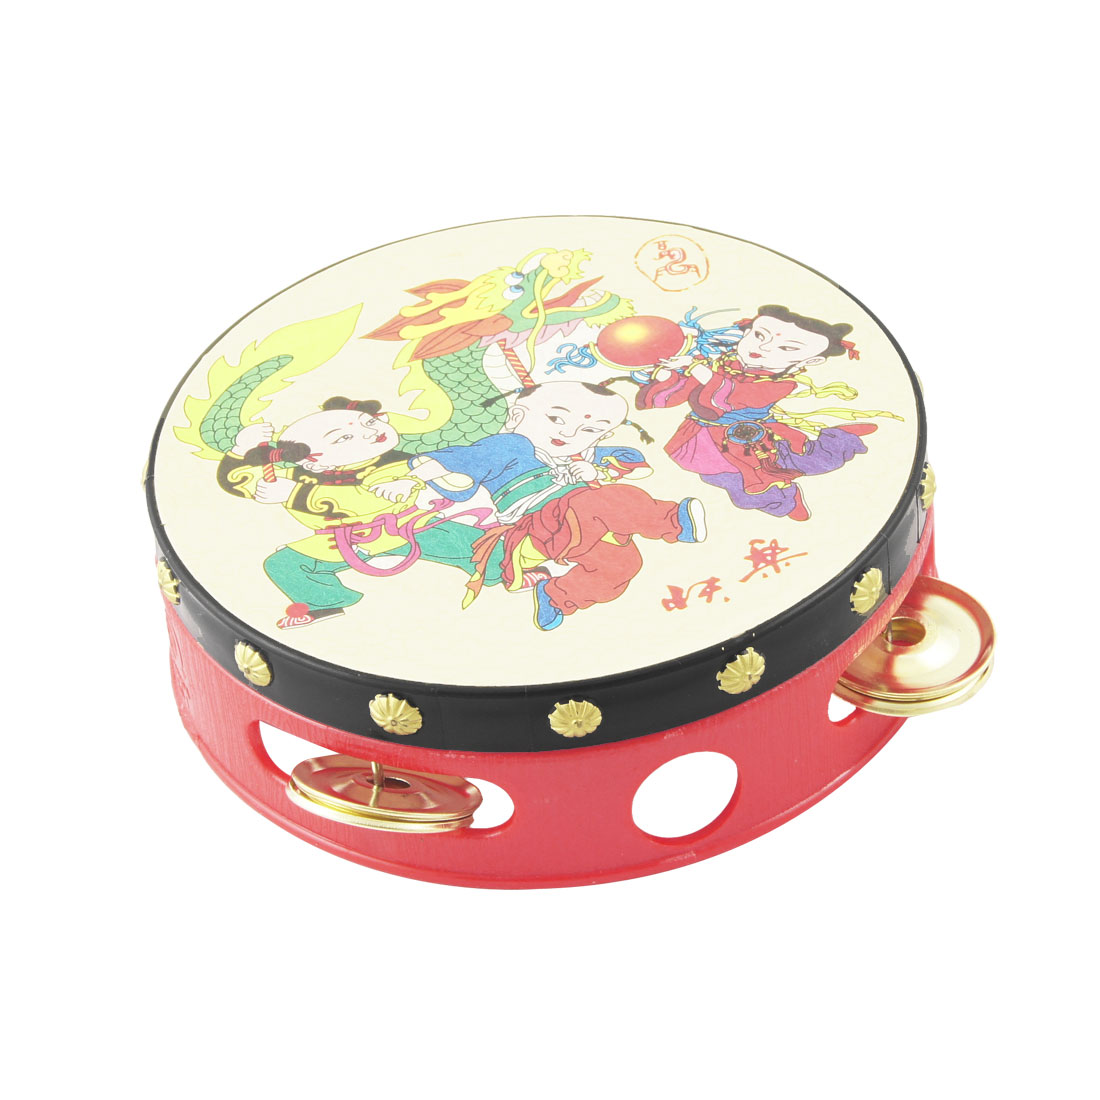 "Chinese Ethnic Toddlers Playing Hand Drum Tambourine Beat Toy 5.3"" Diameter"